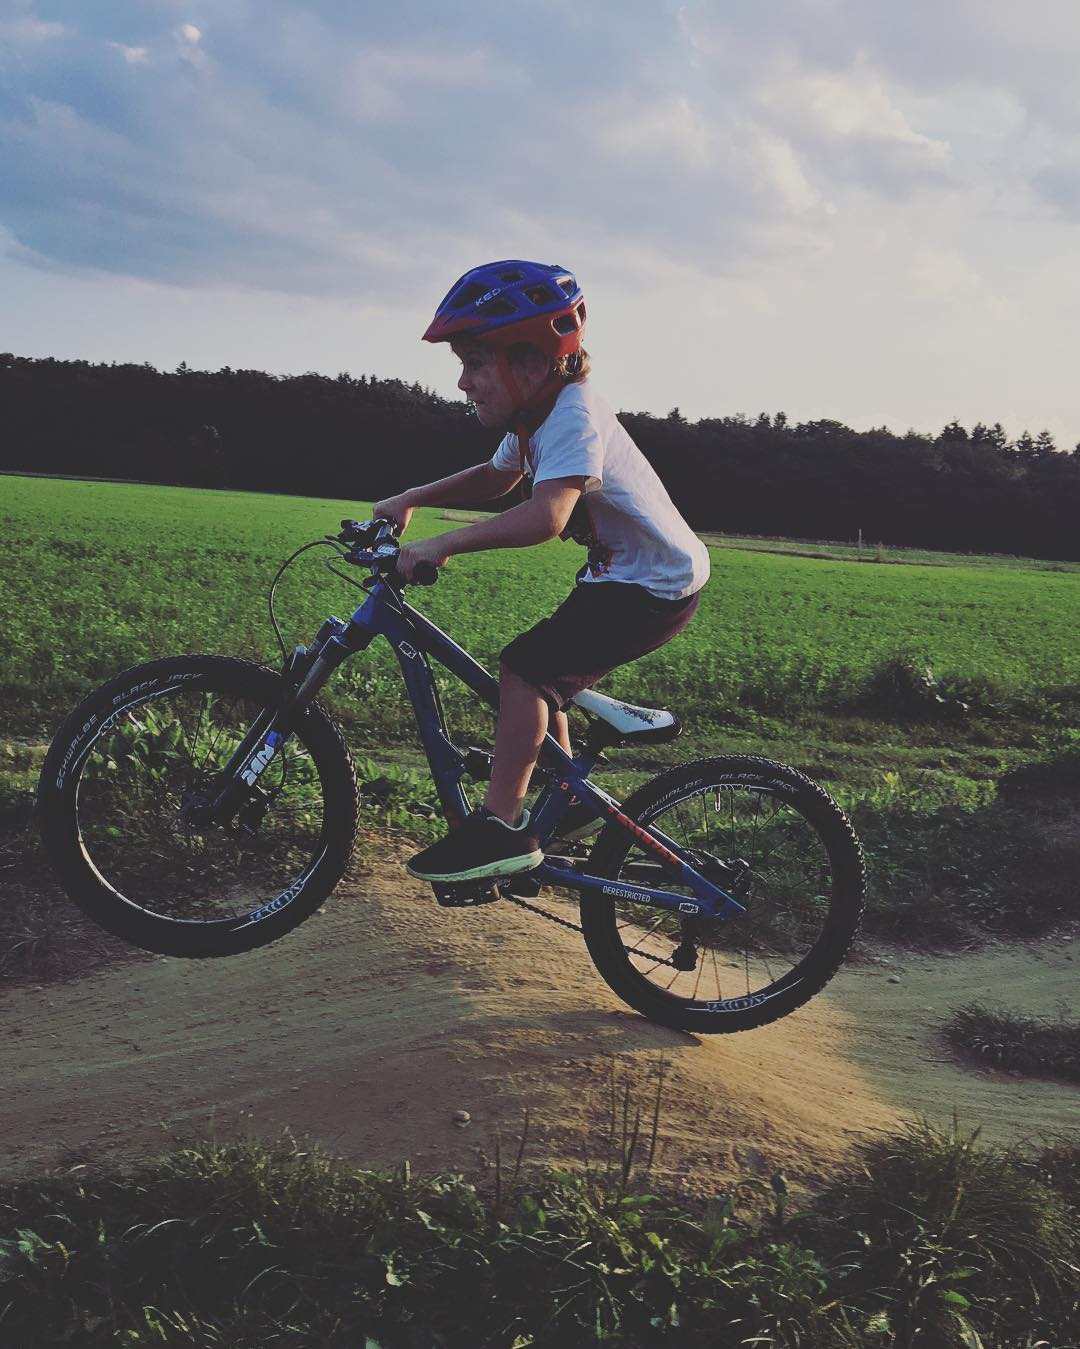 At the pump track with my boy. #frechdax @propain_bicycles